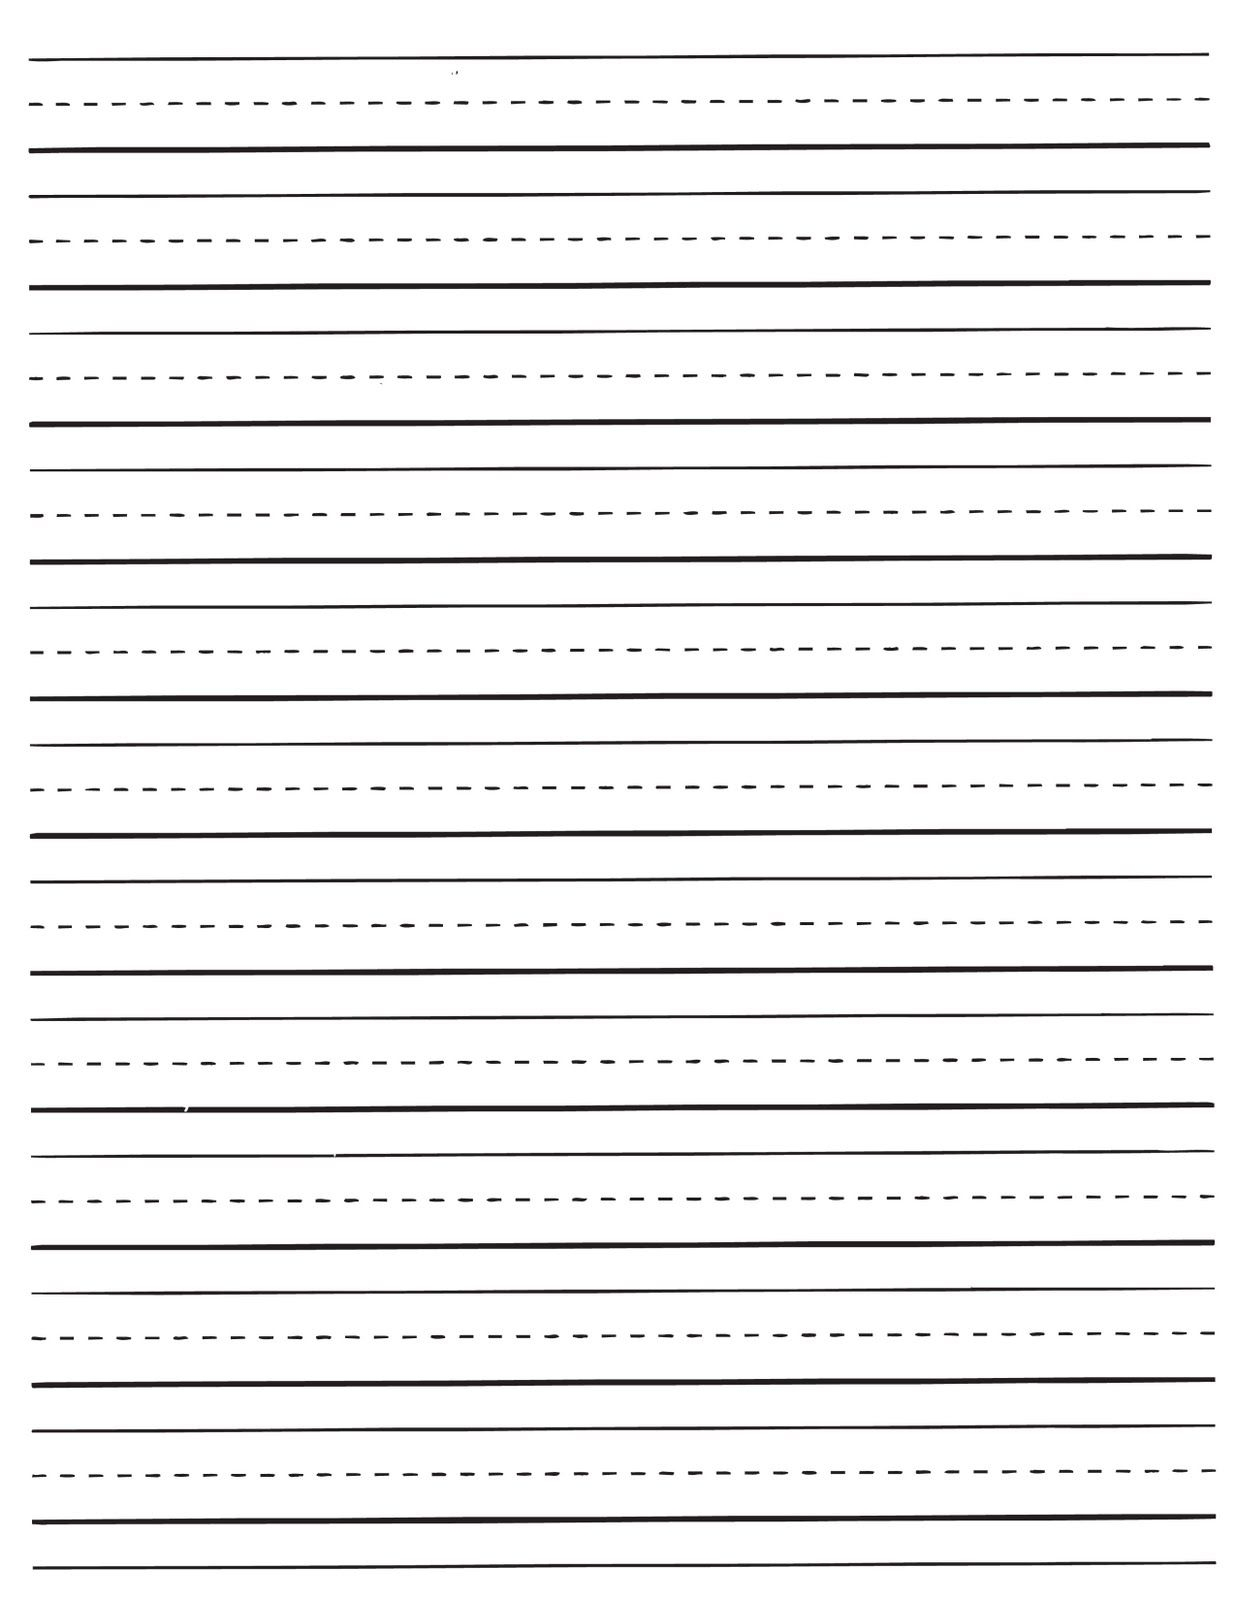 Kids Lined Writing Paper Template